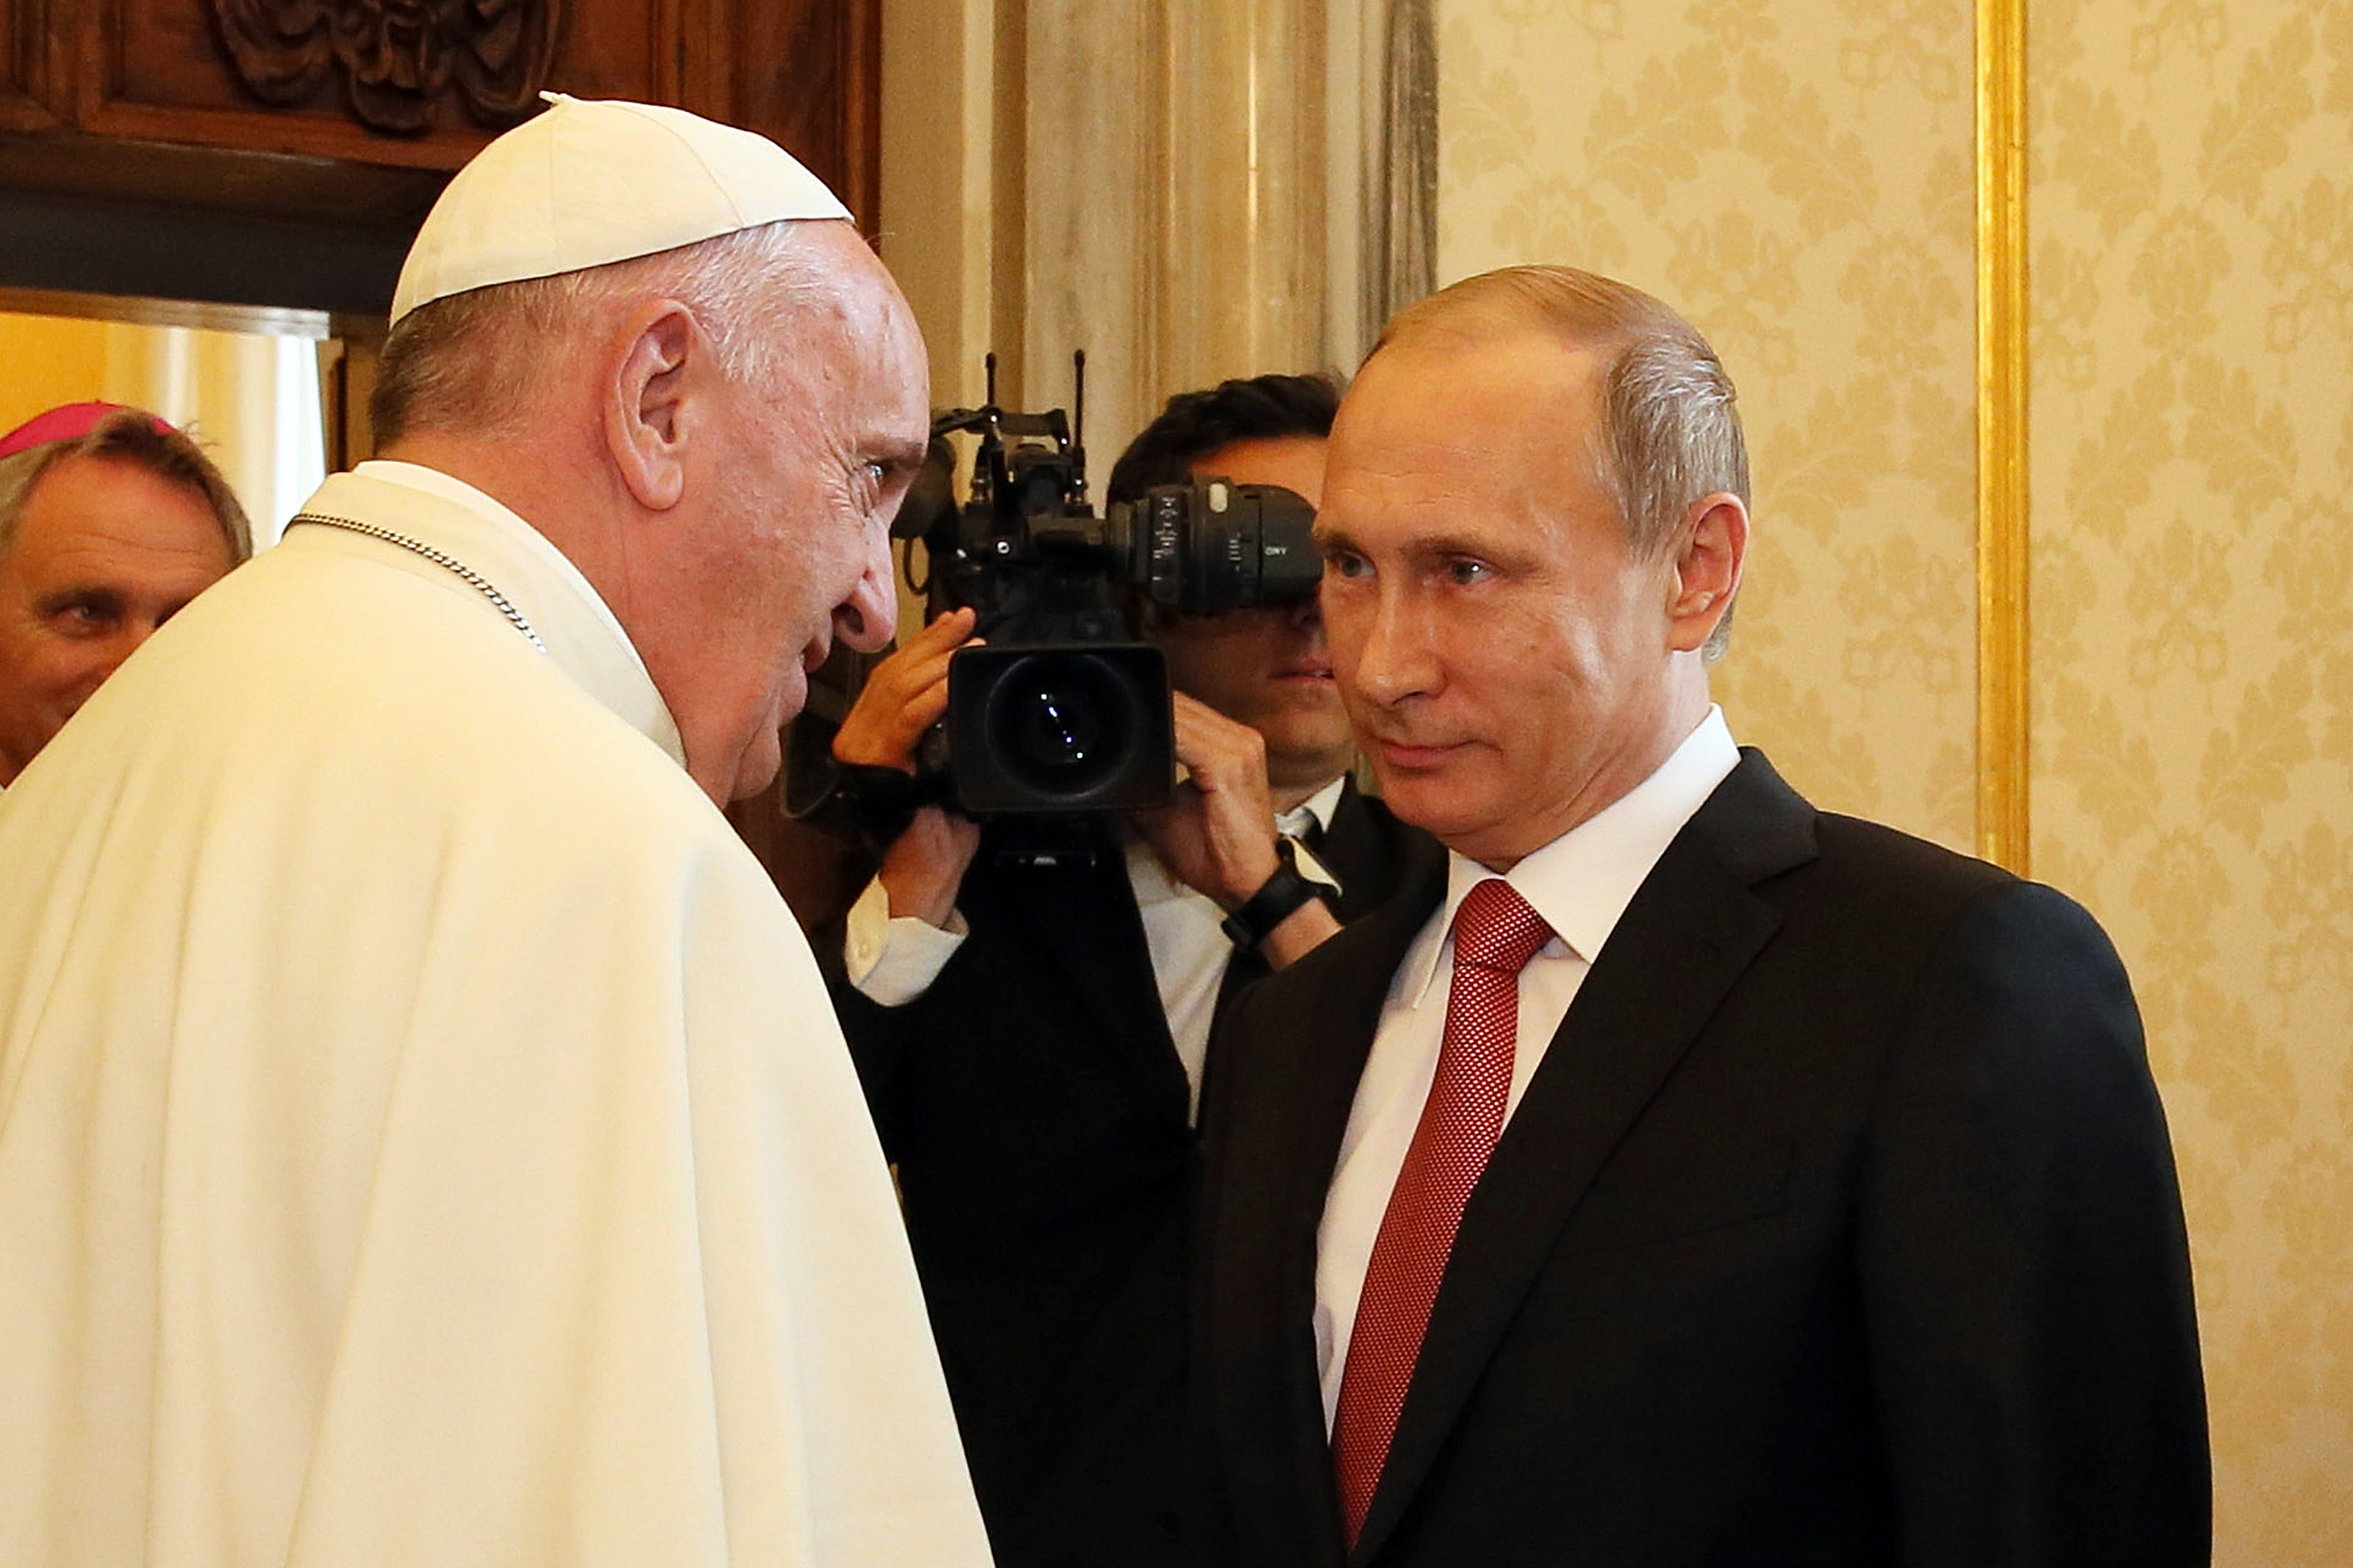 Pope Francis meets President of Russian Federation Vladimir Putin during an audience at the Apostolic Palace on June 10, 2015 in Vatican City, Vatican.